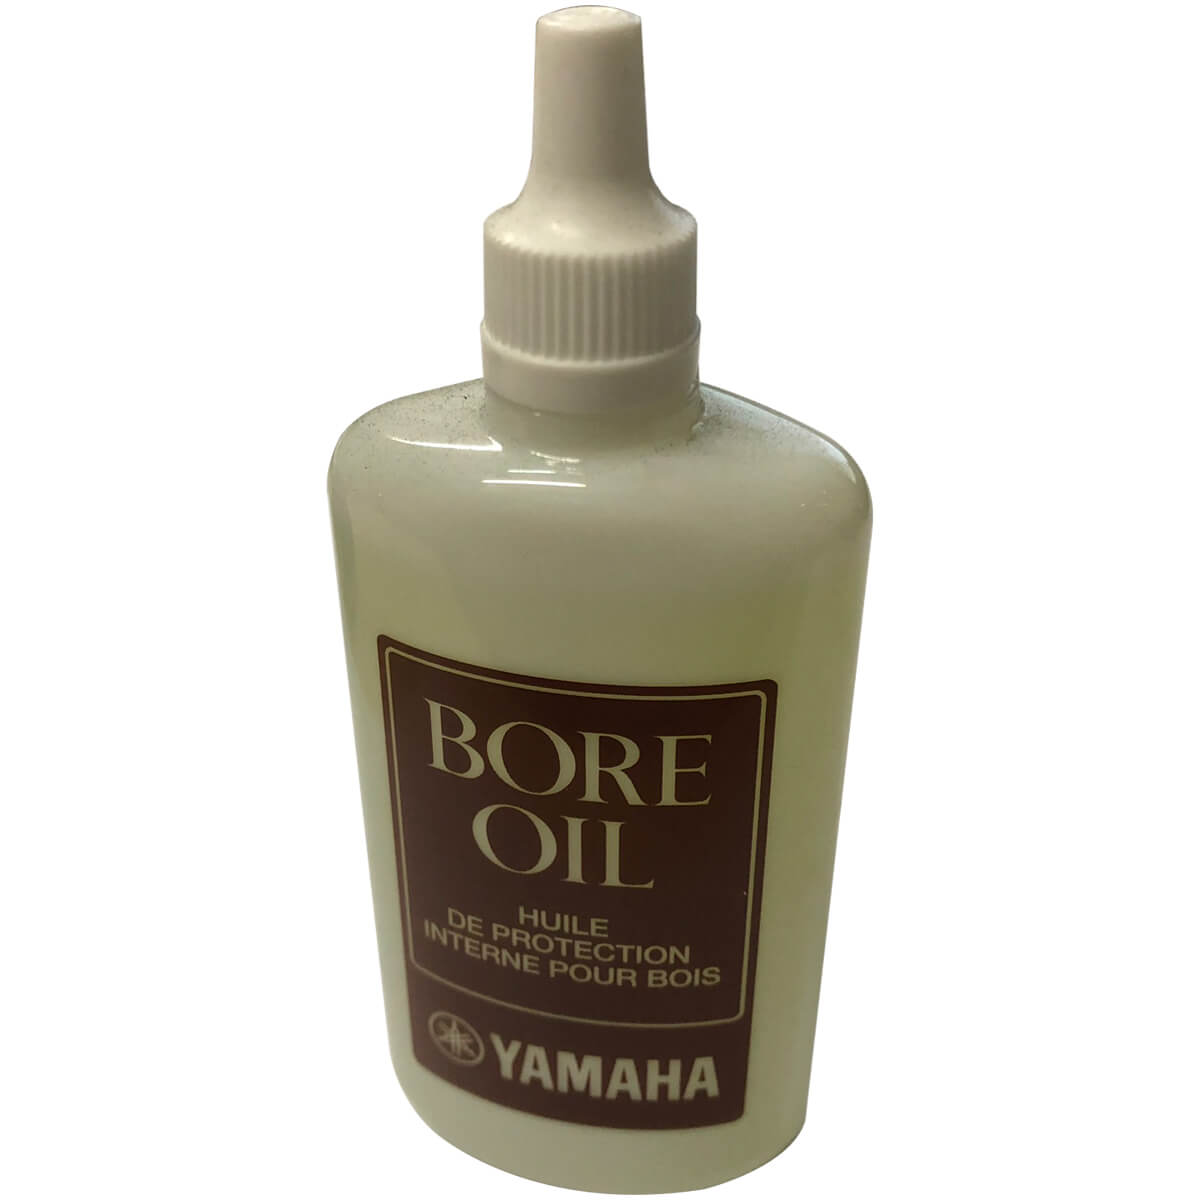 Bore Oil - 40ml - Yamaha